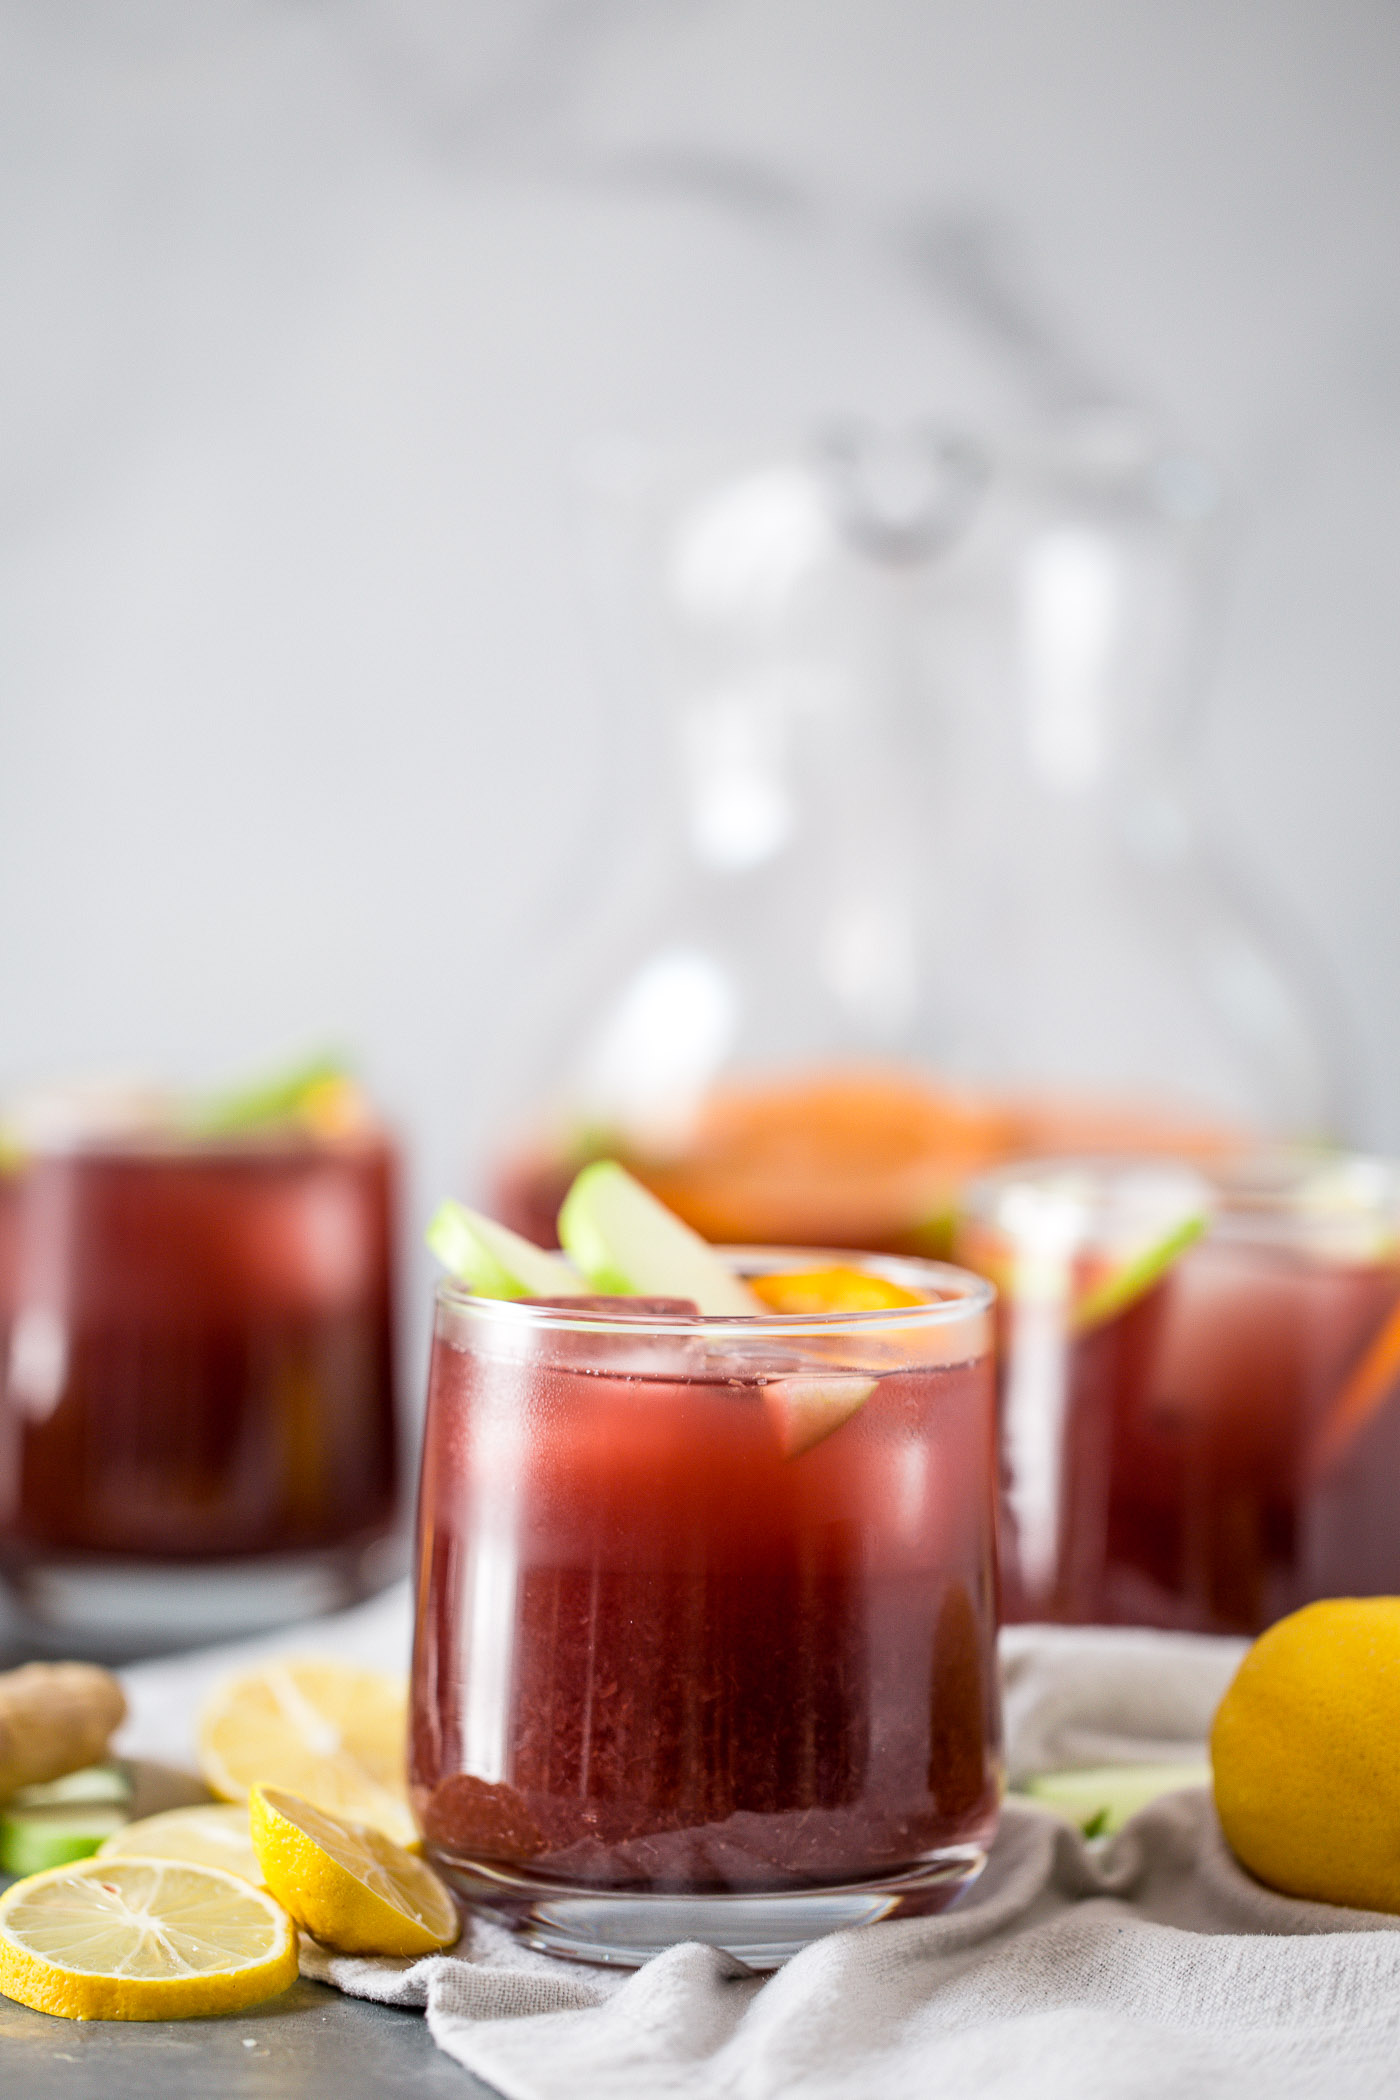 this two buck chuck sangria is an easy & inexpensive red wine sangria recipe featuring trader joe's famous charles shaw wine. make two buck chuck sangria one pitcher at a time - the perfect drink to serve at girls night, holiday parties, dinner parties, & more! #playswellwithbutter #sangria #drinkrecipe #twobuckchuck #traderjoes #traderjoesrecipe